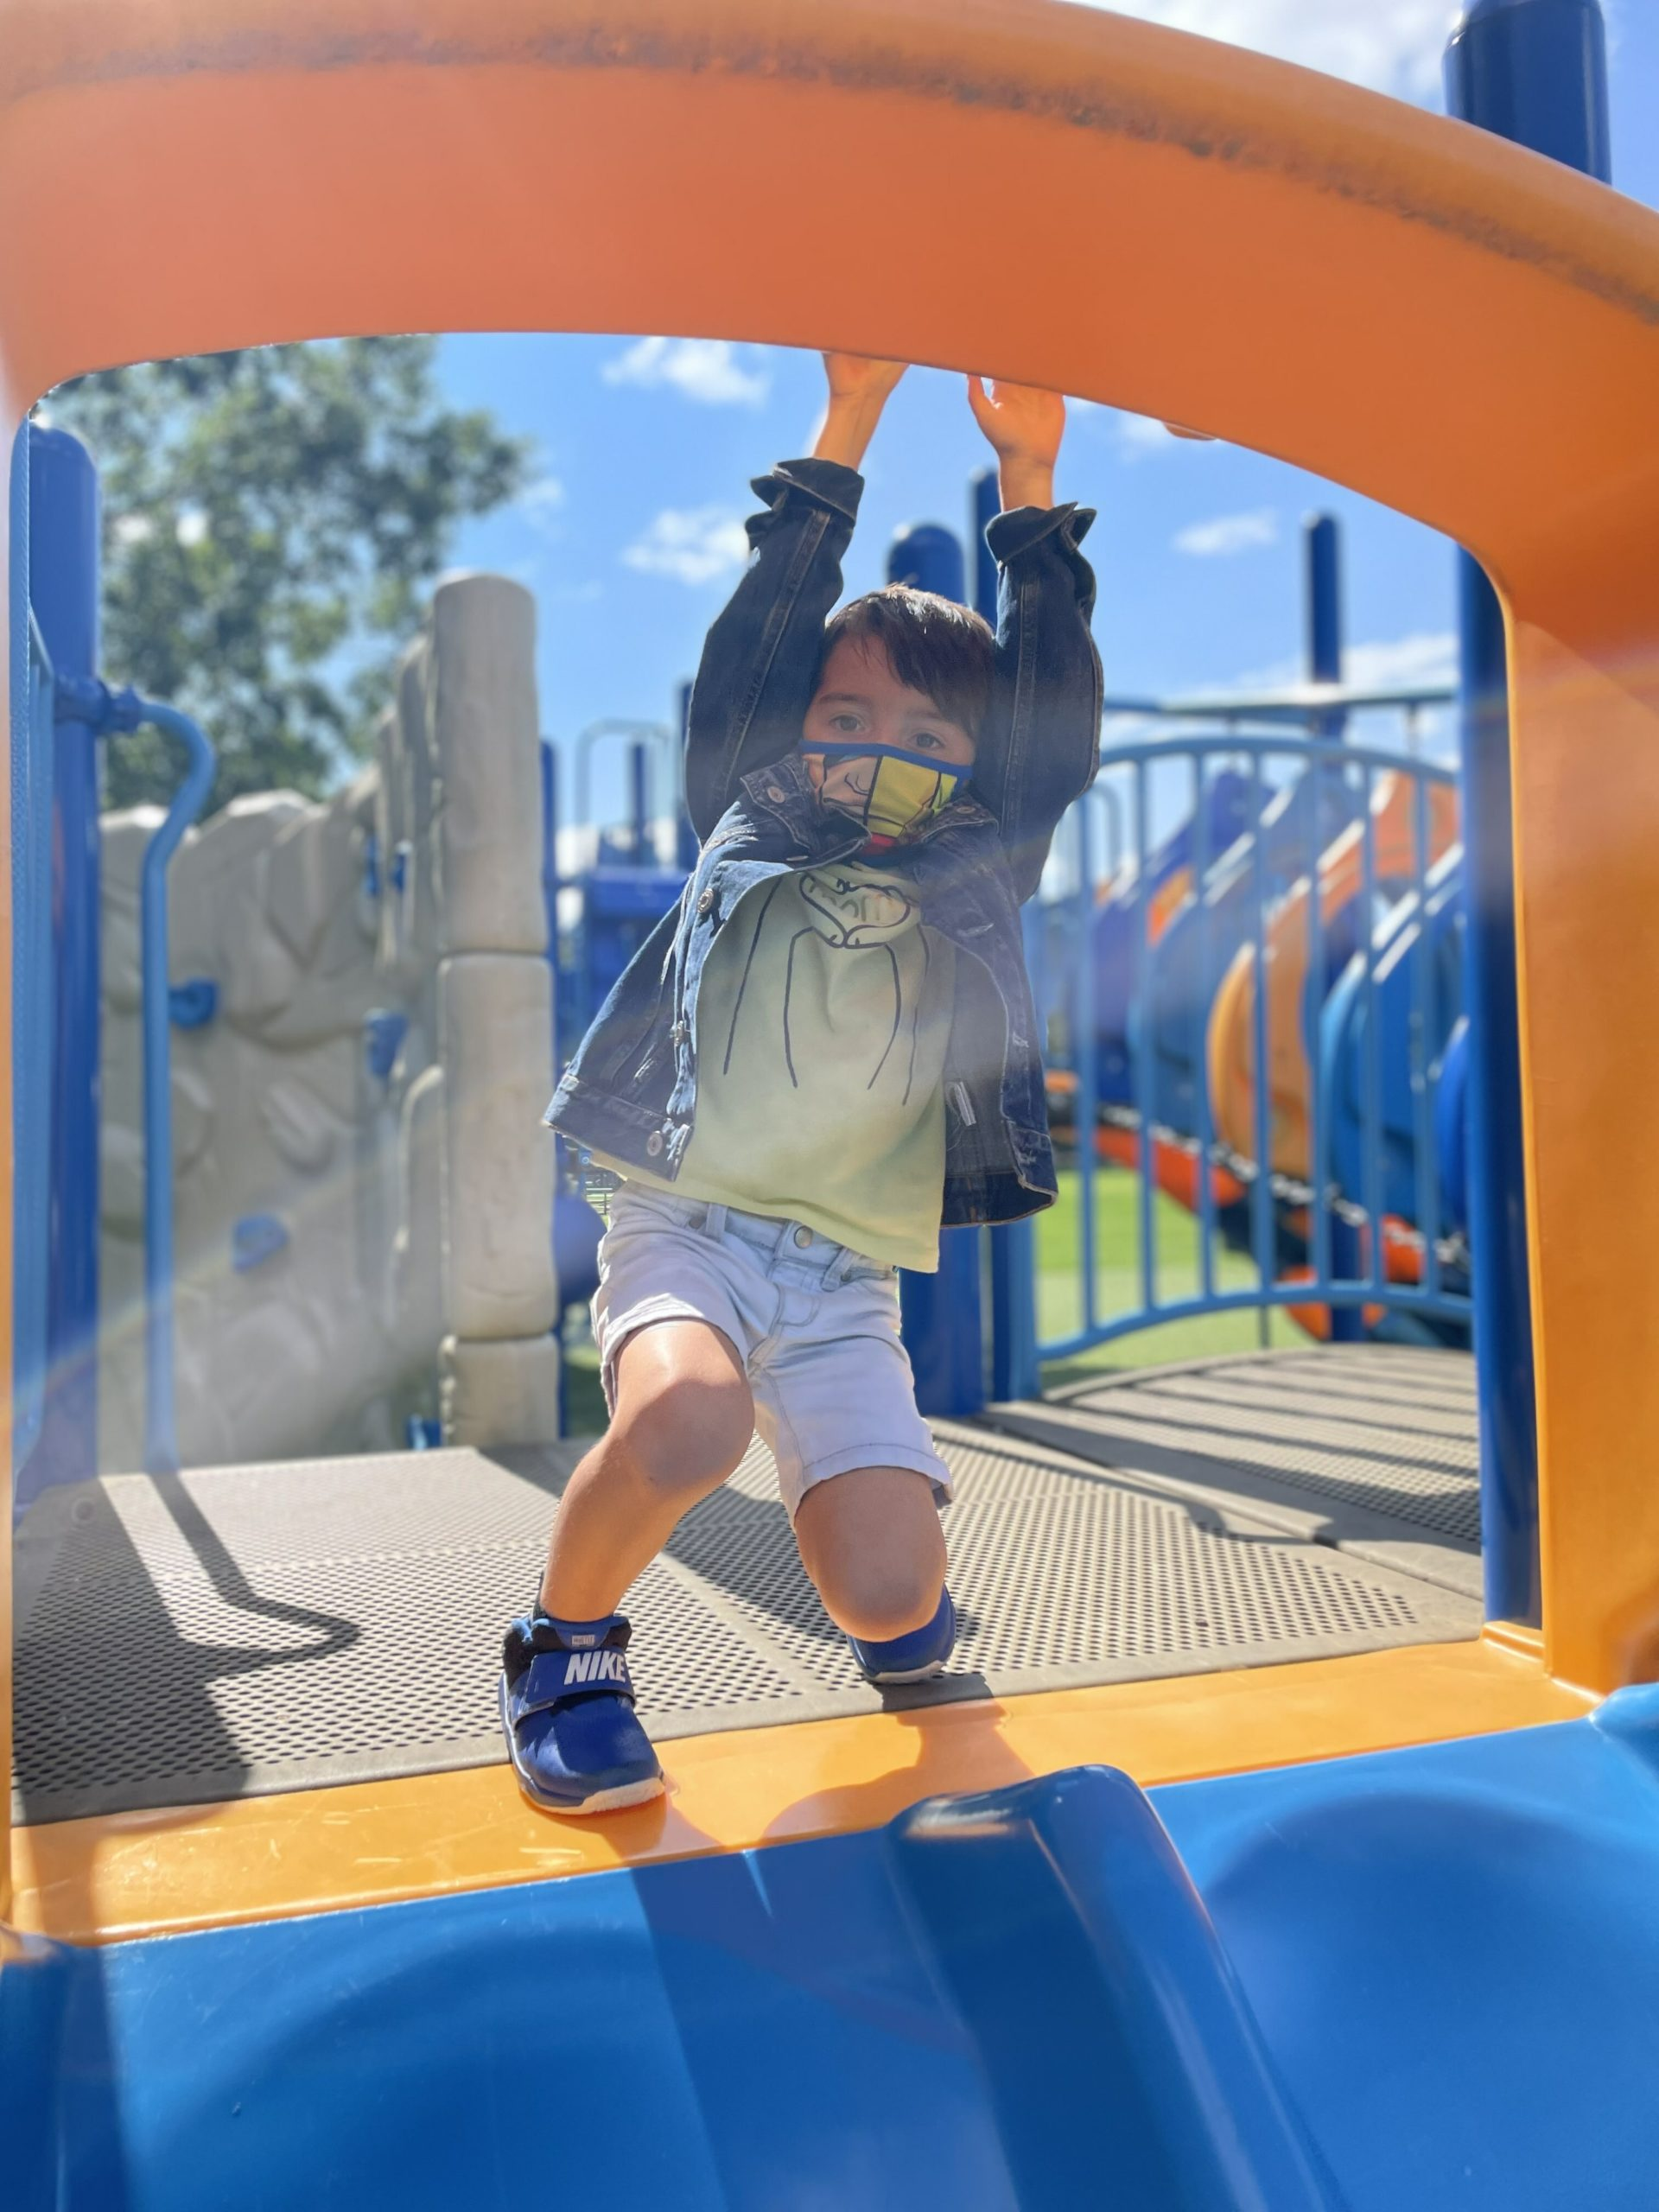 Students at East Quogue Elementary School are off to a great start, especially enjoying time outdoors for recess.